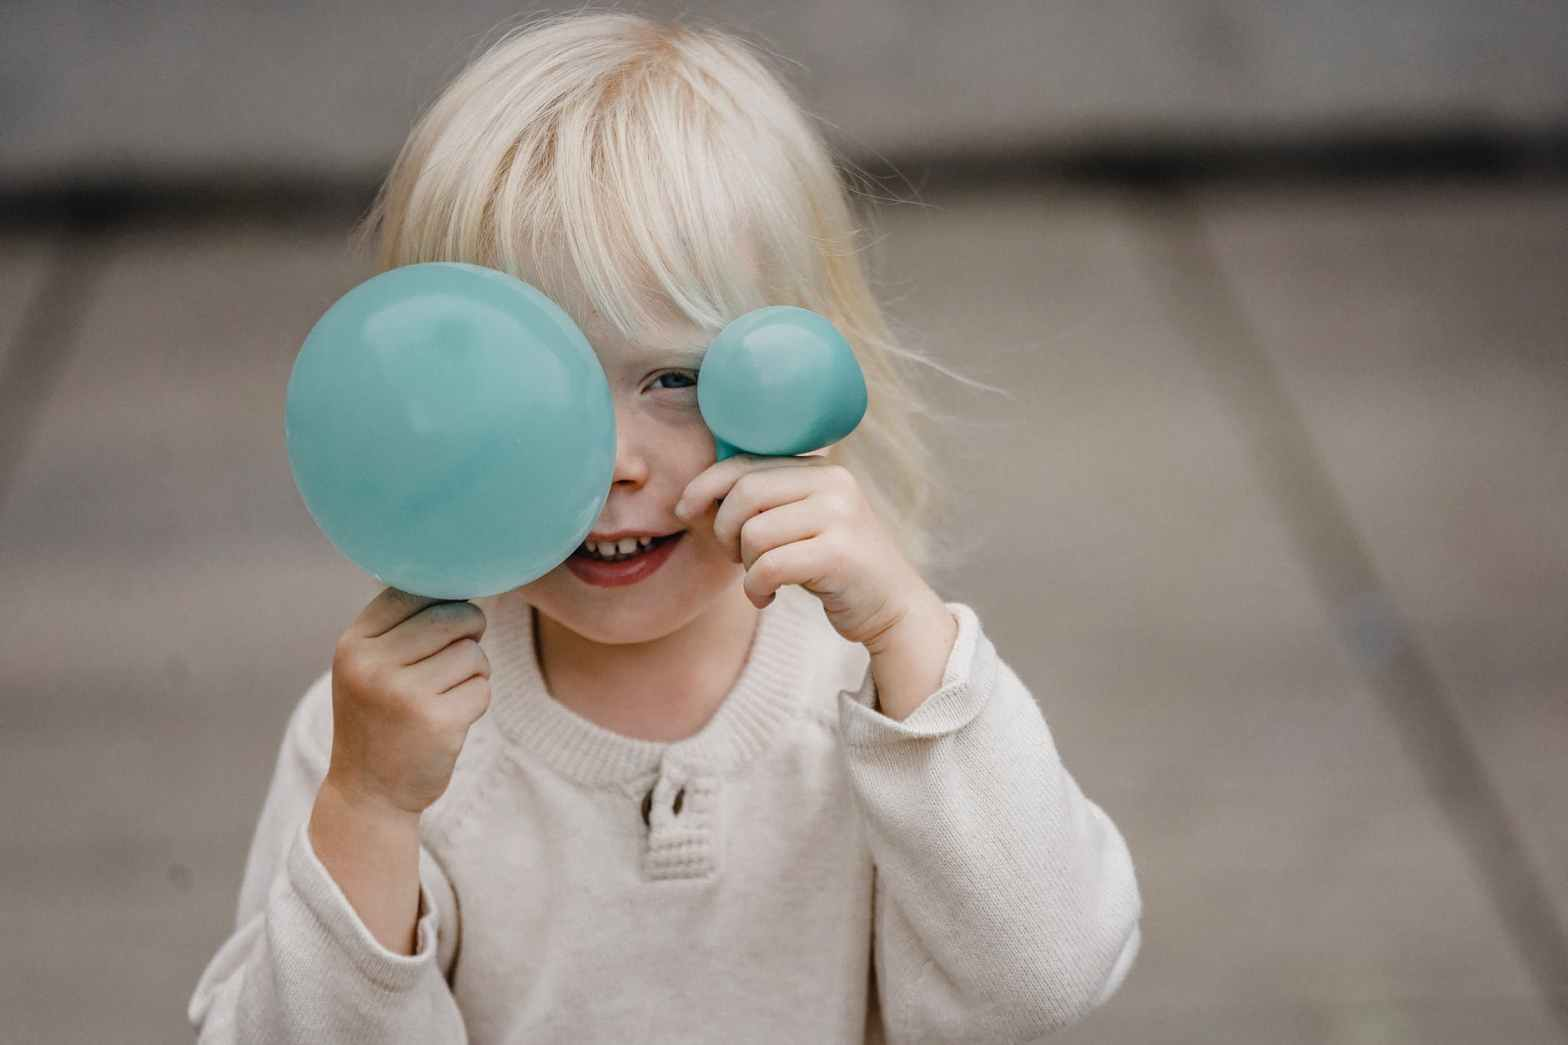 smiling little girl covering face with balloons on street